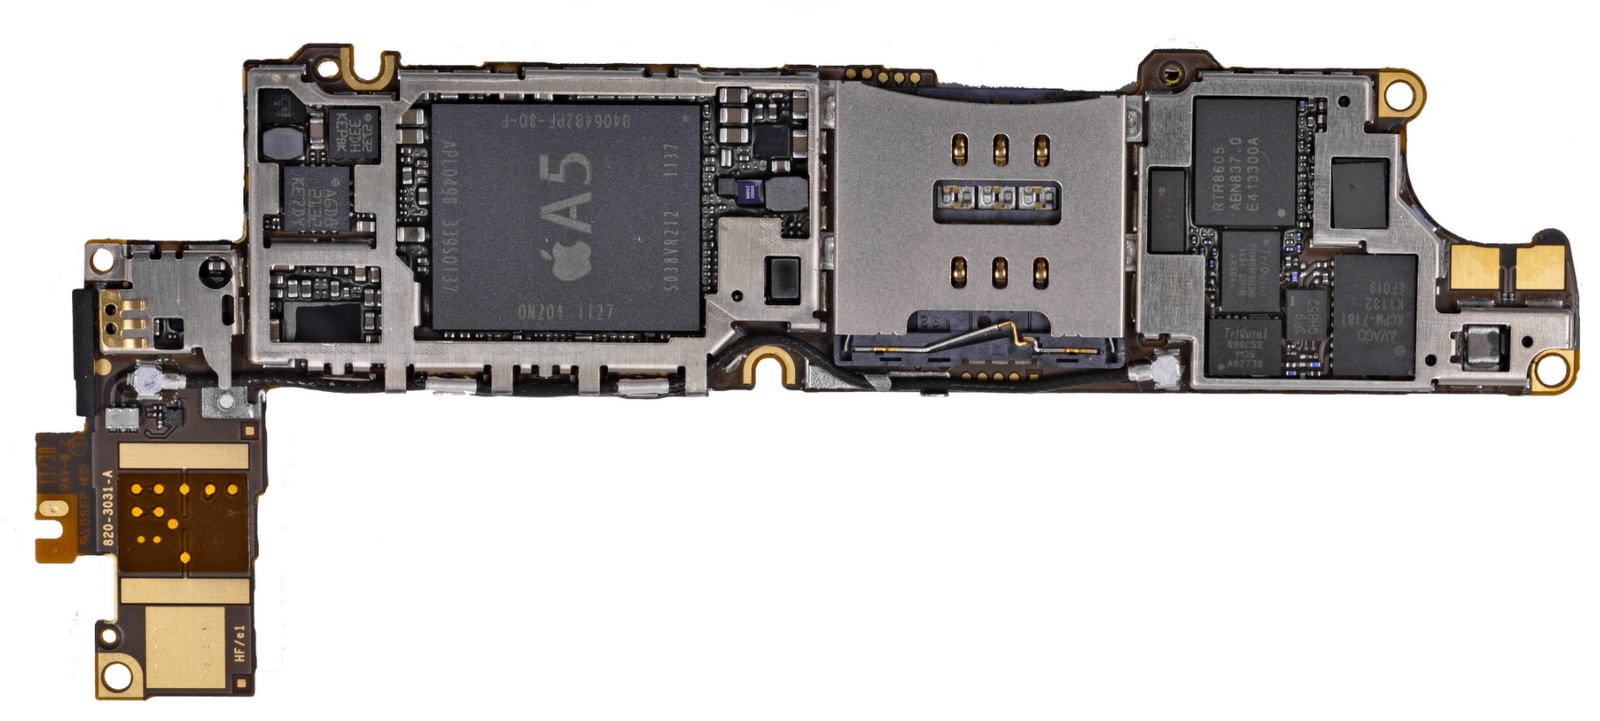 iphone 4s parts diagram underfloor heating thermostat wiring page 3 5 motherboard pictured